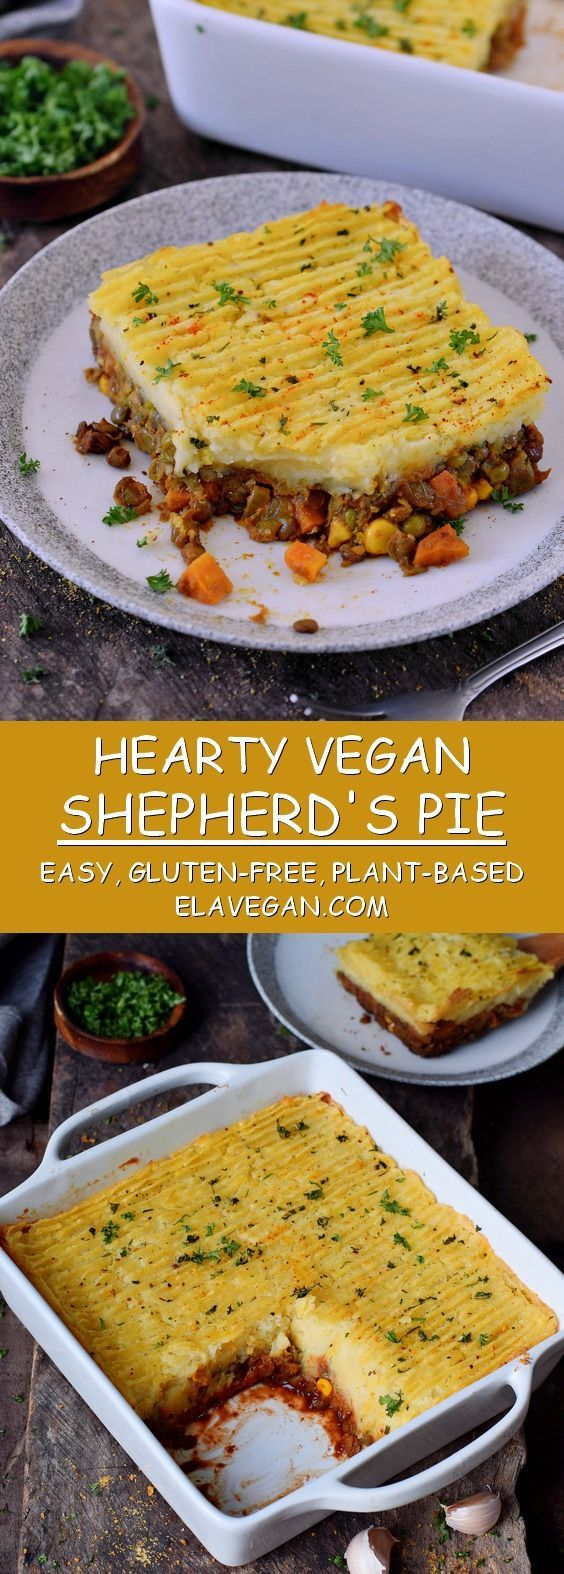 Hearty vegan Shepherd's Pie (without lamb) made with lentils and veggies. This comfort dish is easy to make, gluten-free, protein-rich and very delicious. This recipe is also known as cottage pie which, however, is made with beef. My vegan version is perfect for dinner and ready in less than 60 minutes! #vegan #glutenfree #shepherdspie #cottagepie #mashedpotatoes | elavegan.com #dishesfordinner